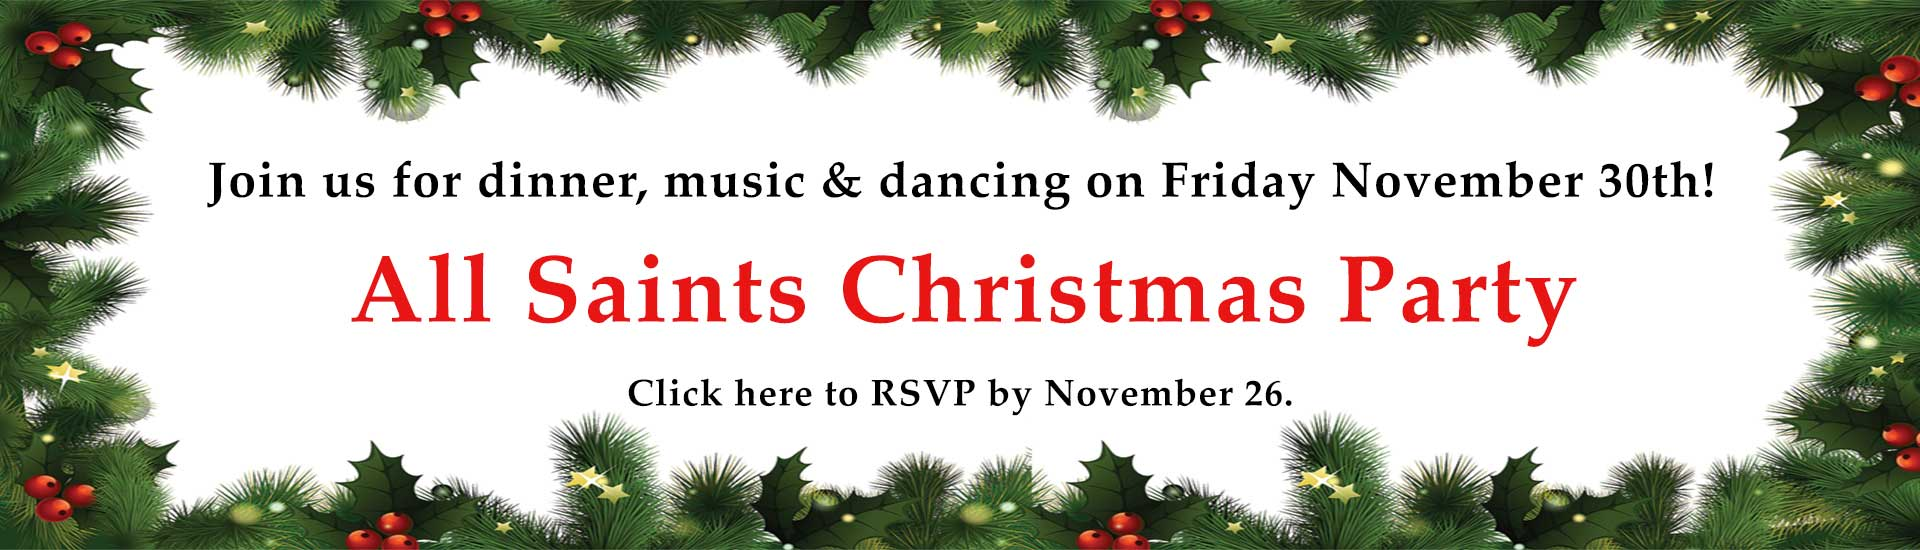 Christmas Party RSVP